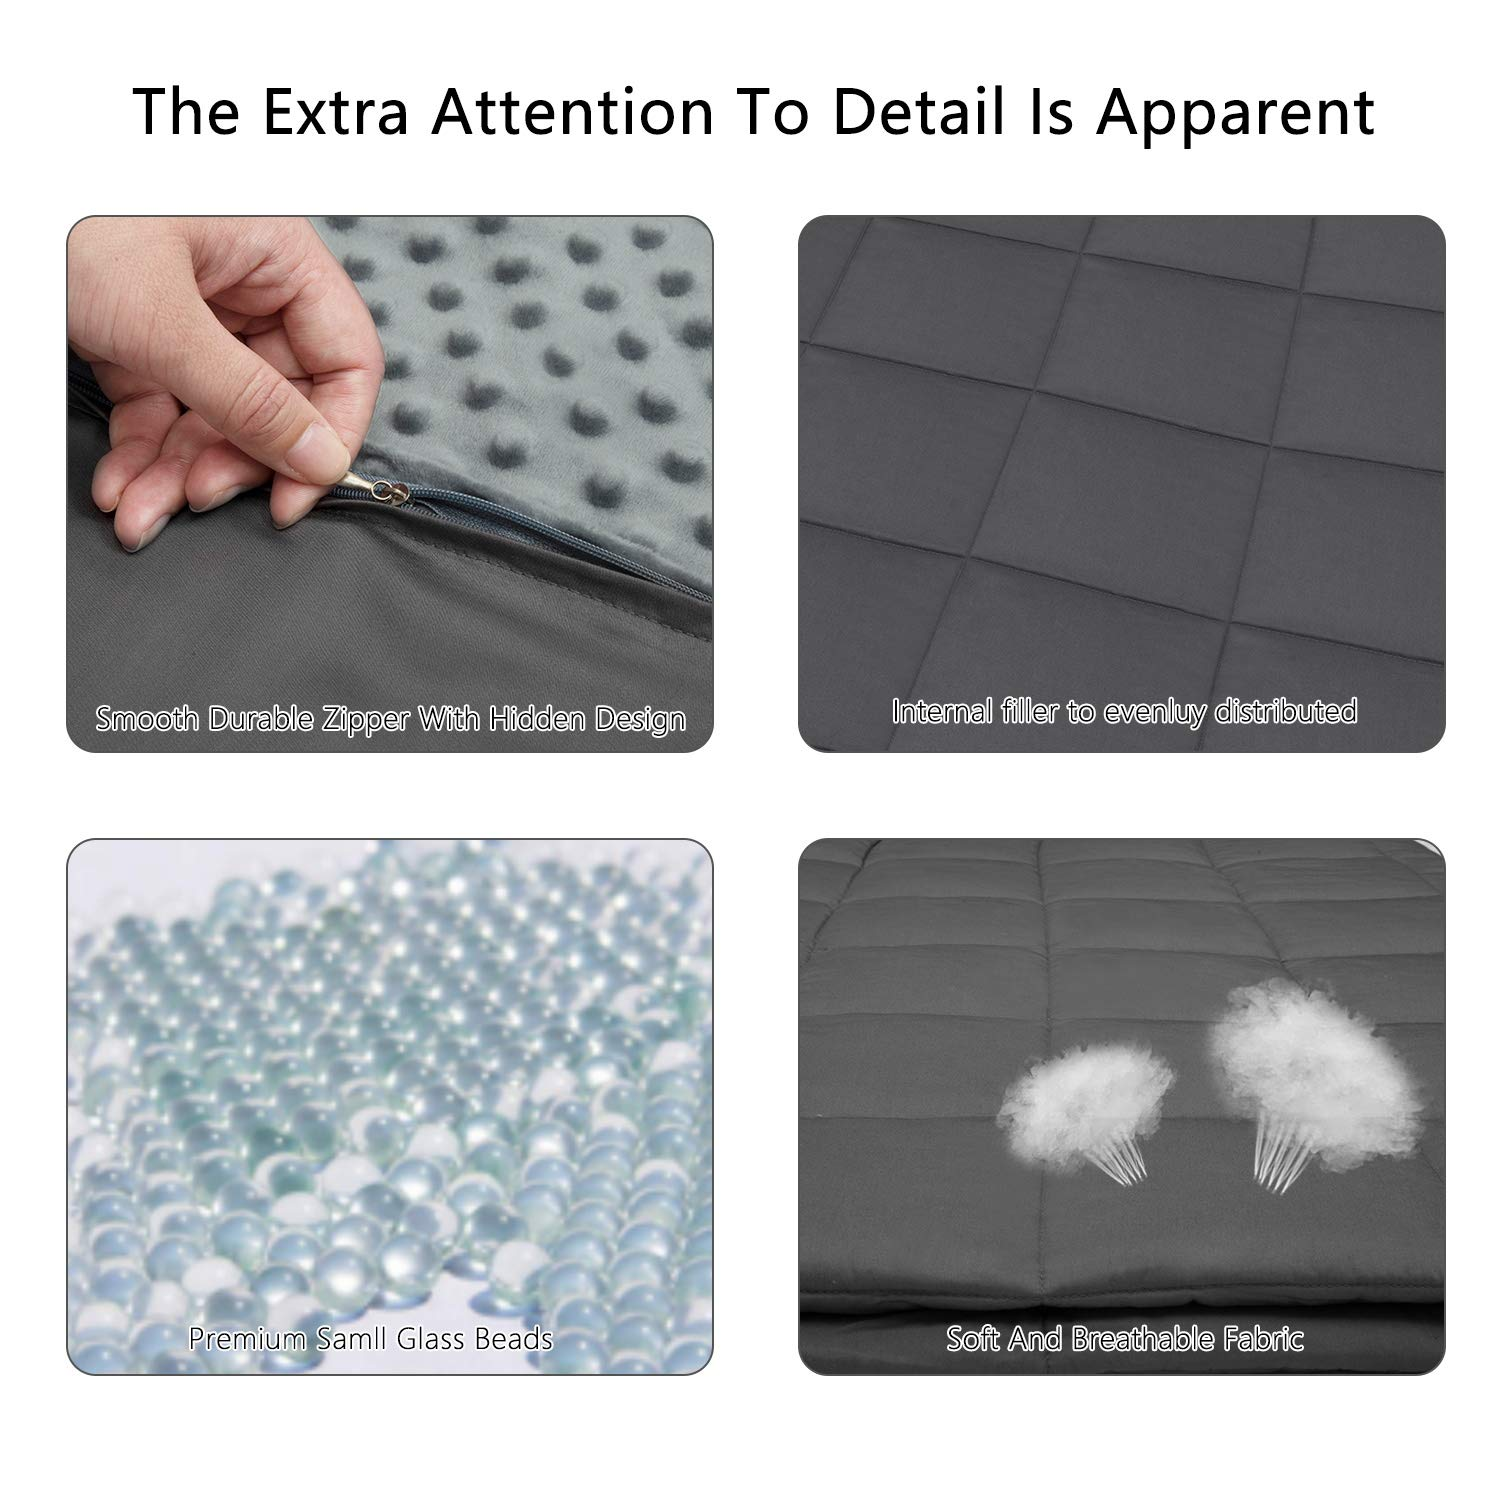 Stress ADHD,Grey Weighted Blanket with Removable Cover for Adults,Size60/×80 20 lbs for Individual Between 180-220 lbs,Set with Bamboo and Minky Duvet Covers Dual Sided,Compression Therapy for Anxiety Insomnia